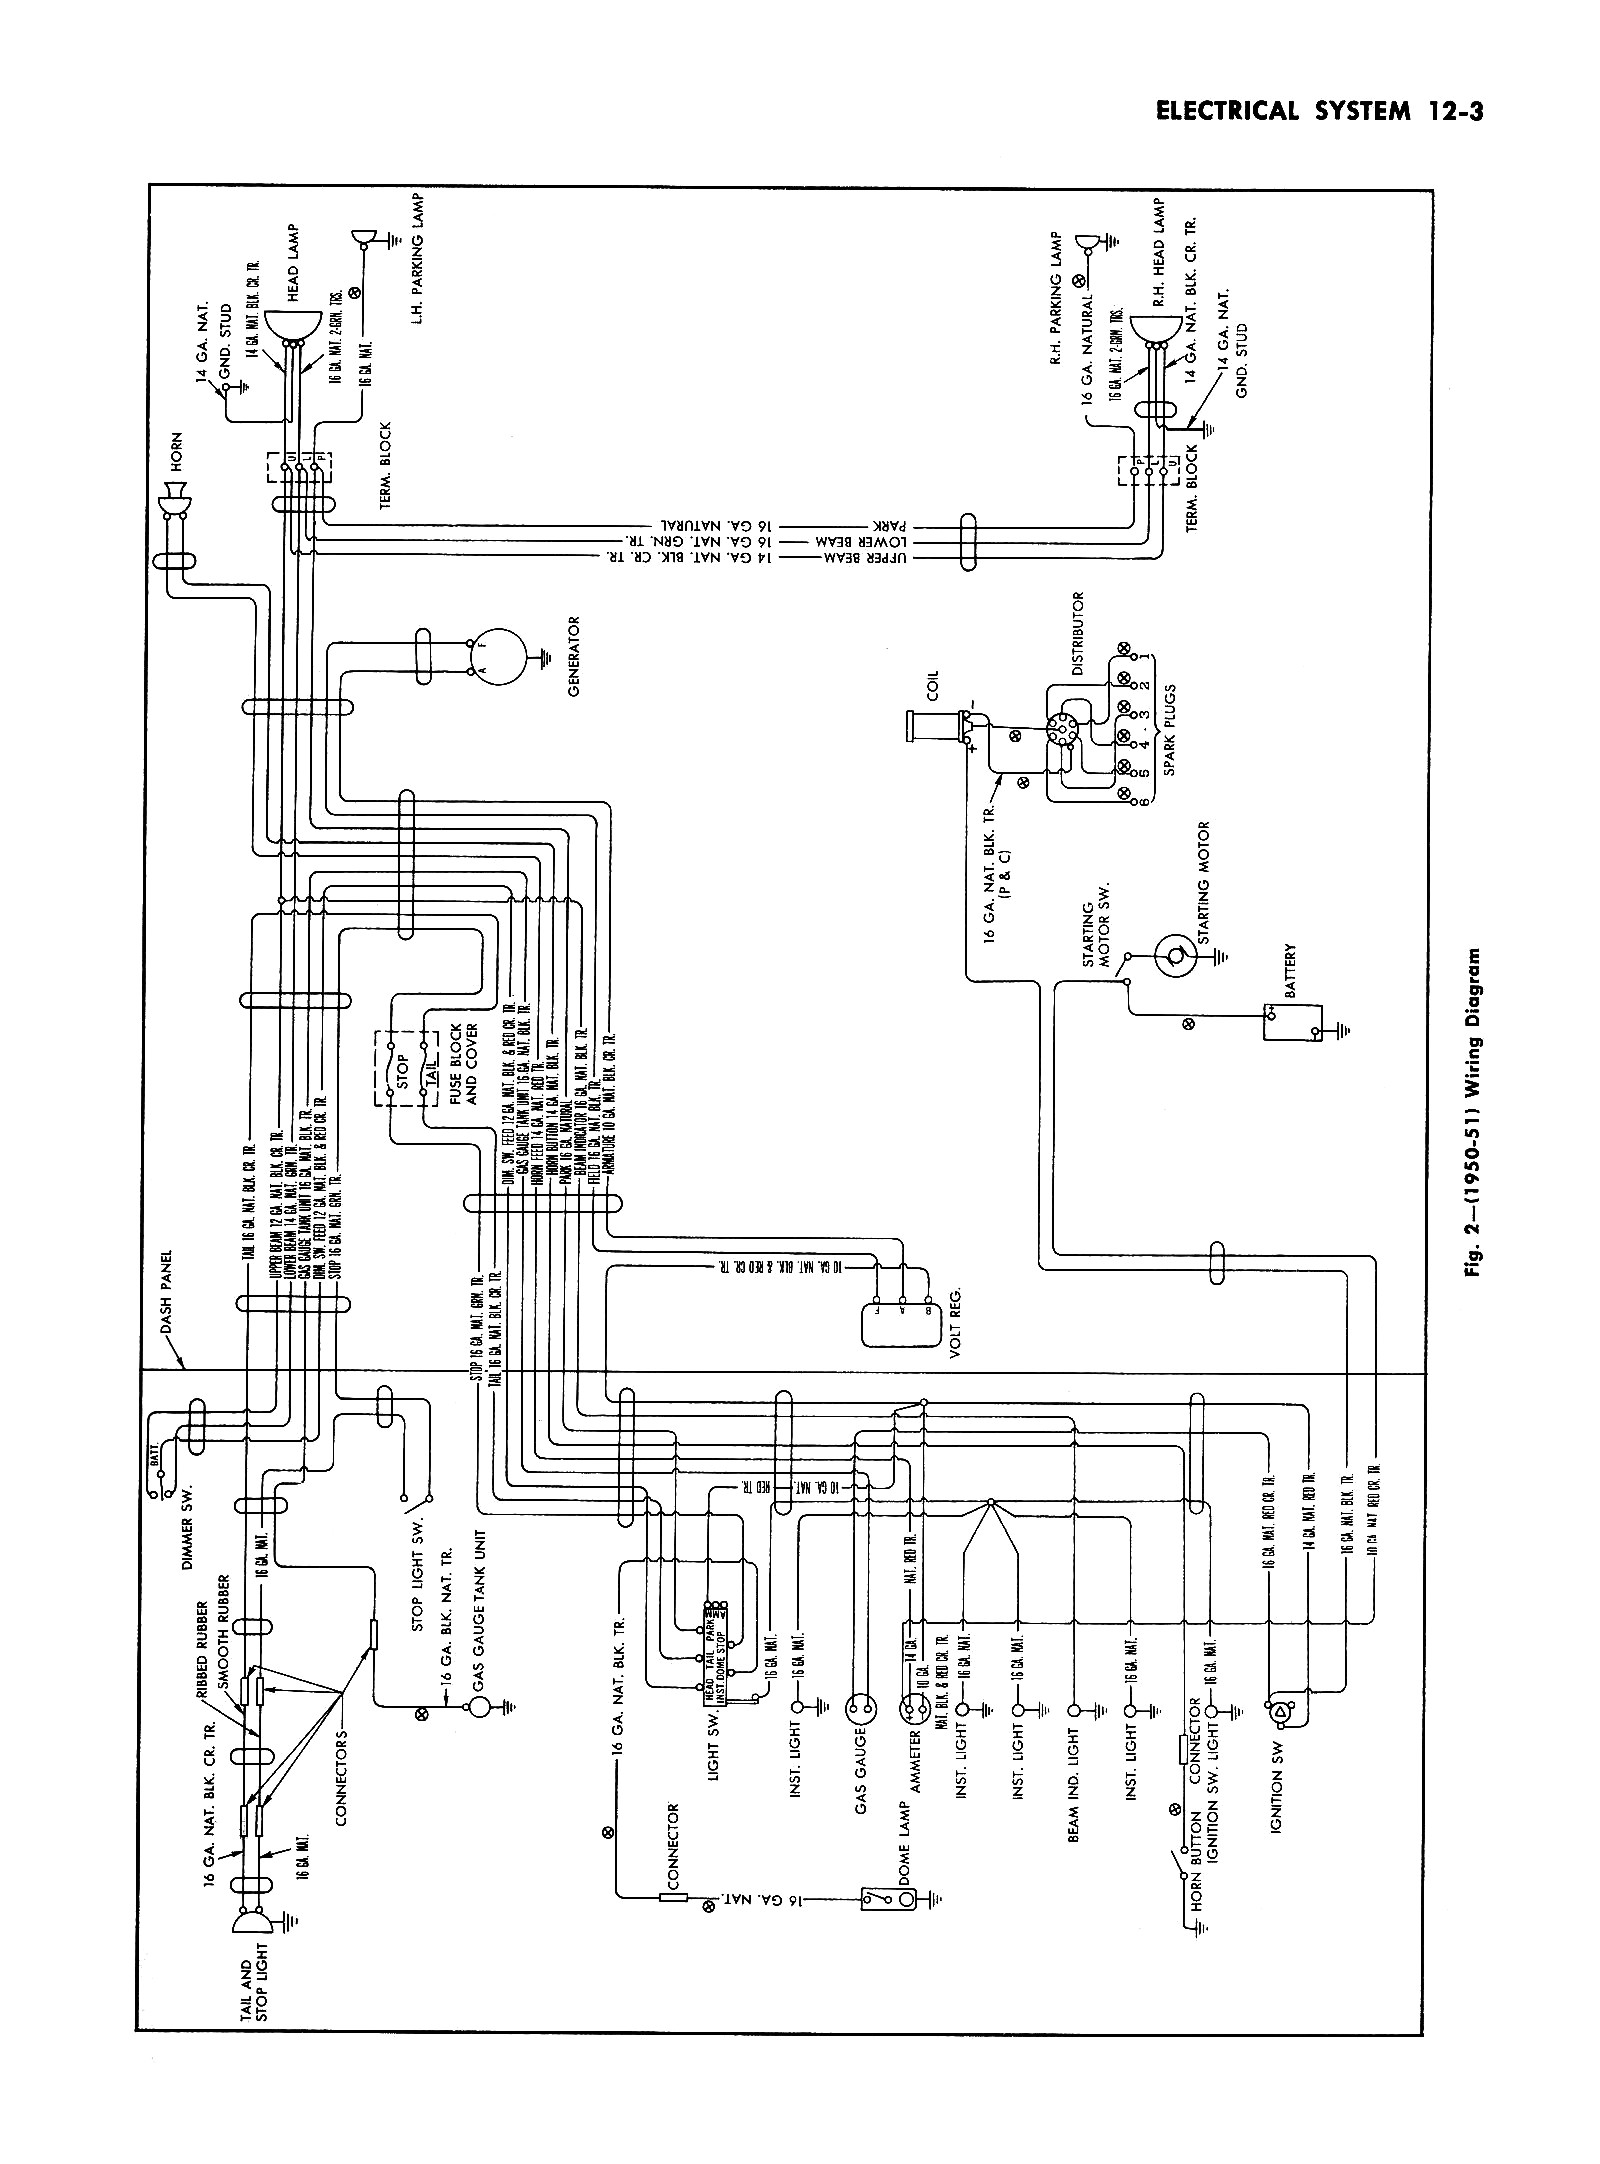 1959 Ford Steering Column Wiring Diagram in addition Classic Truck Drawings also Chevy Truck Frame Dimensions additionally 74 Firebird Ac Wiring Diagram together with 1949 8n Ford Tractor Wiring Diagram. on 1956 ford f100 side view